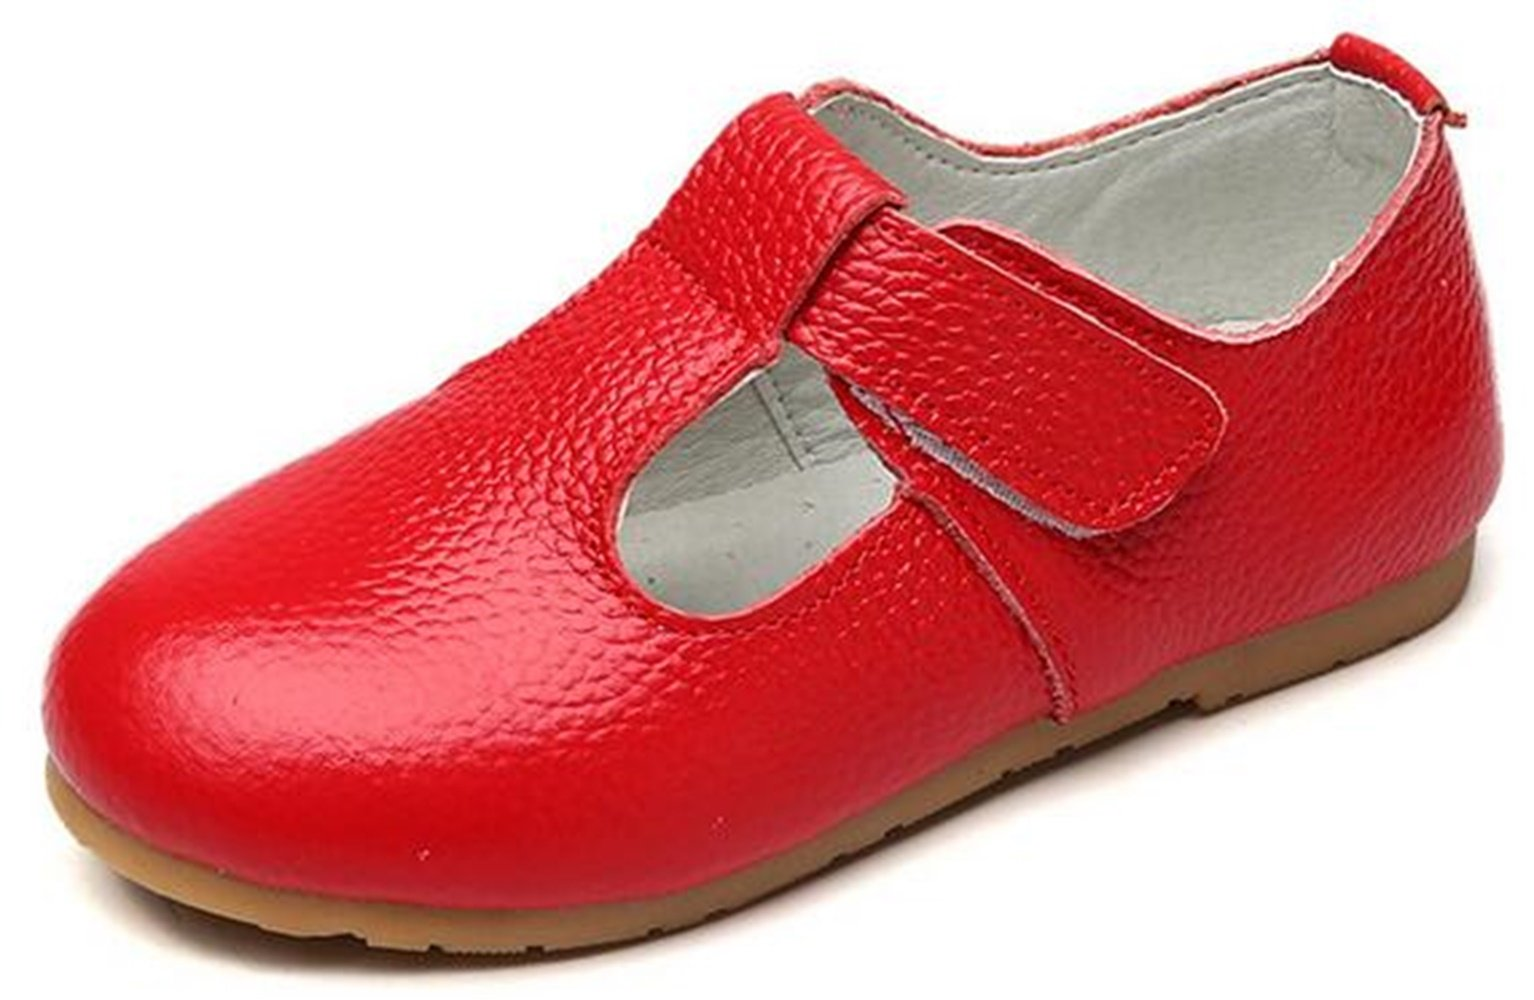 PPXID Girl's Sweet Soft Leather Oxford Shoes-Red 13 US Size